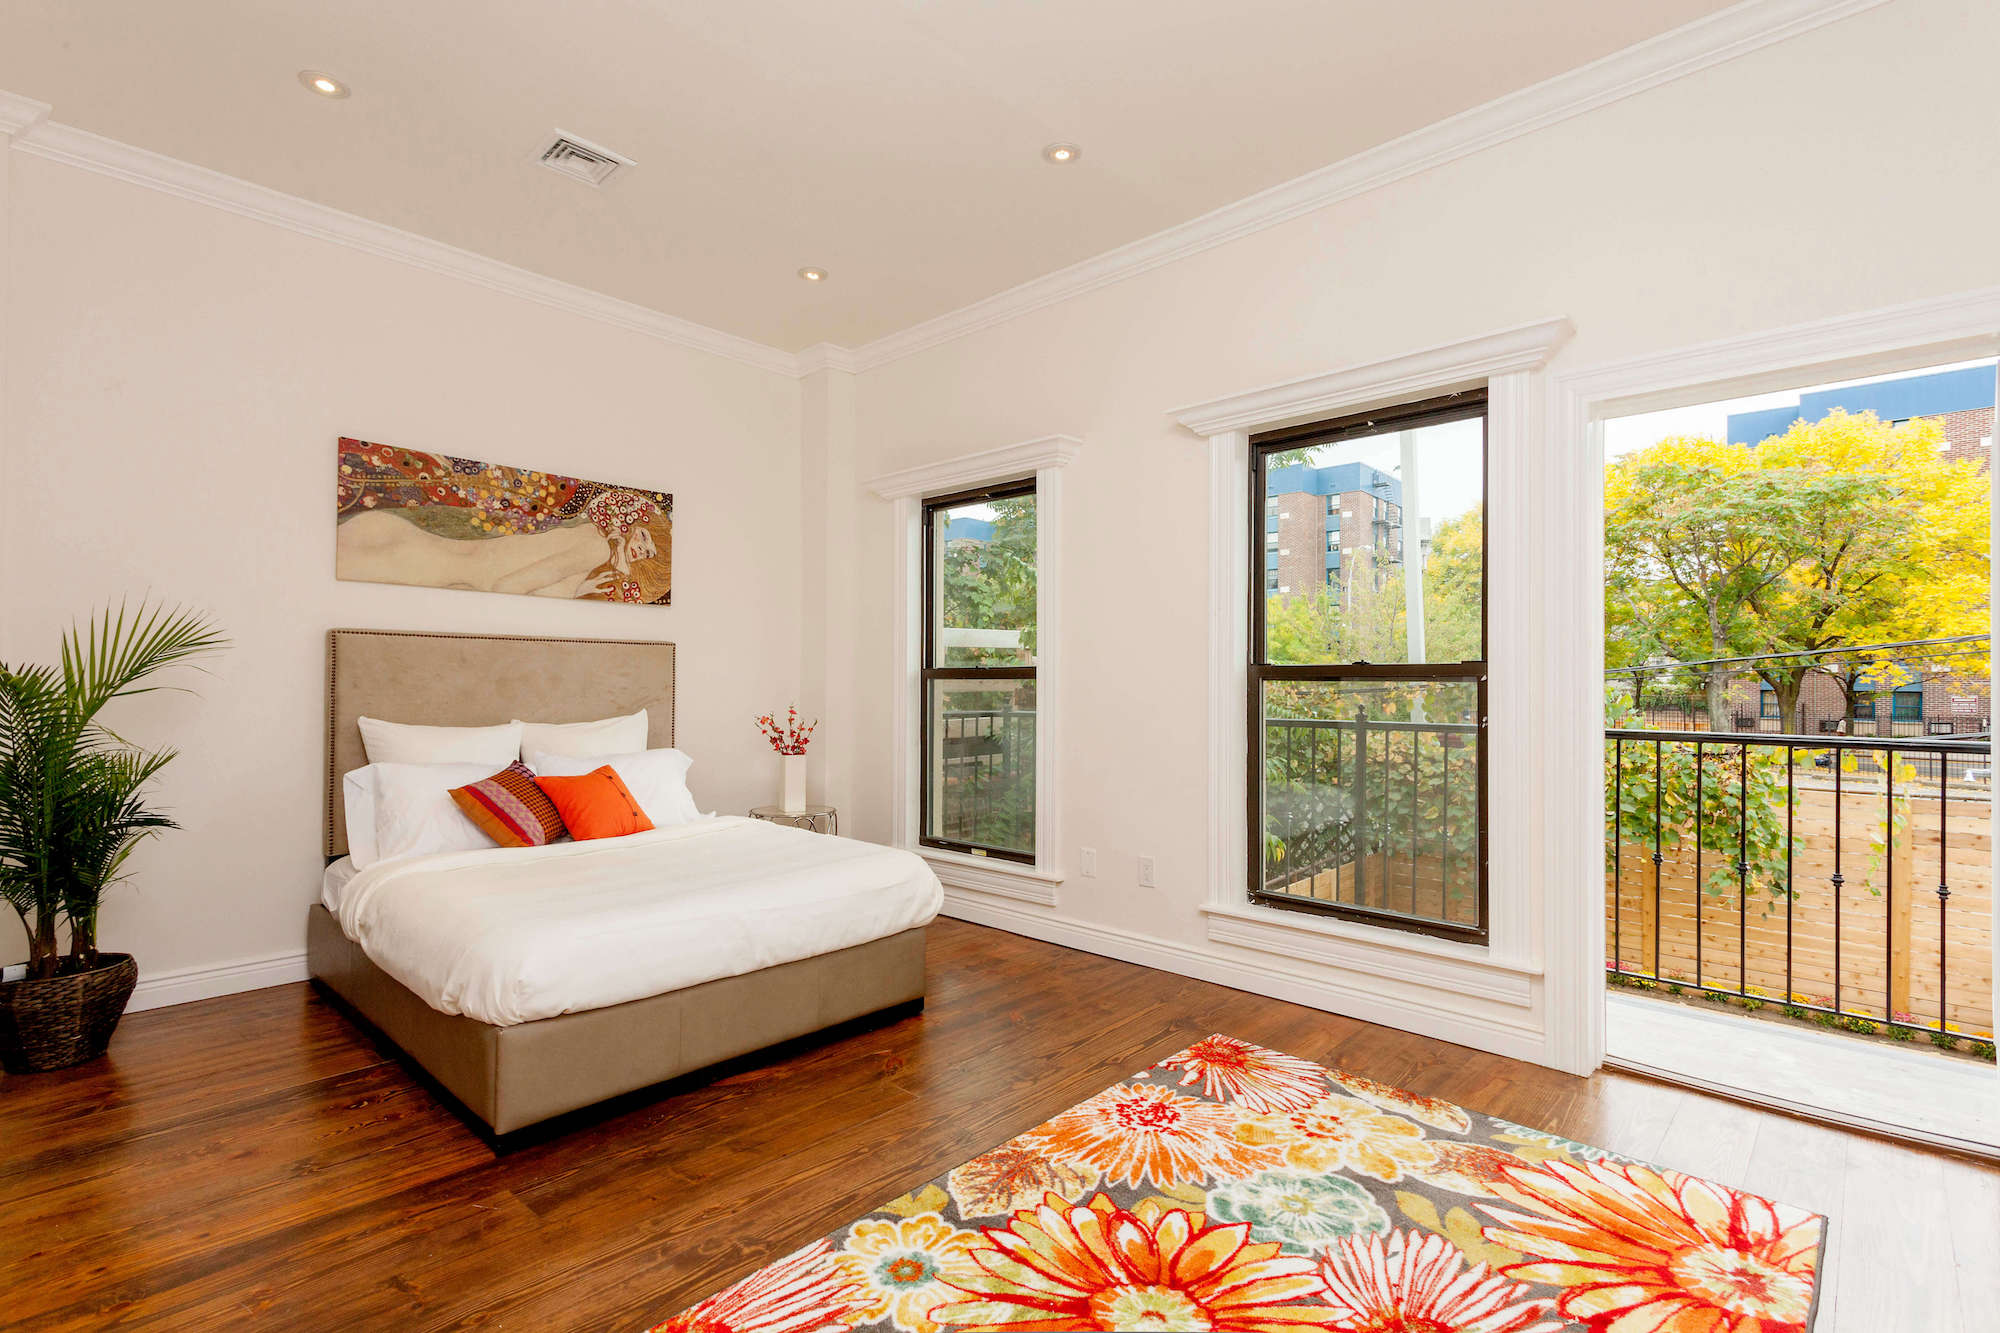 Colorful Bedroom with Natural Light